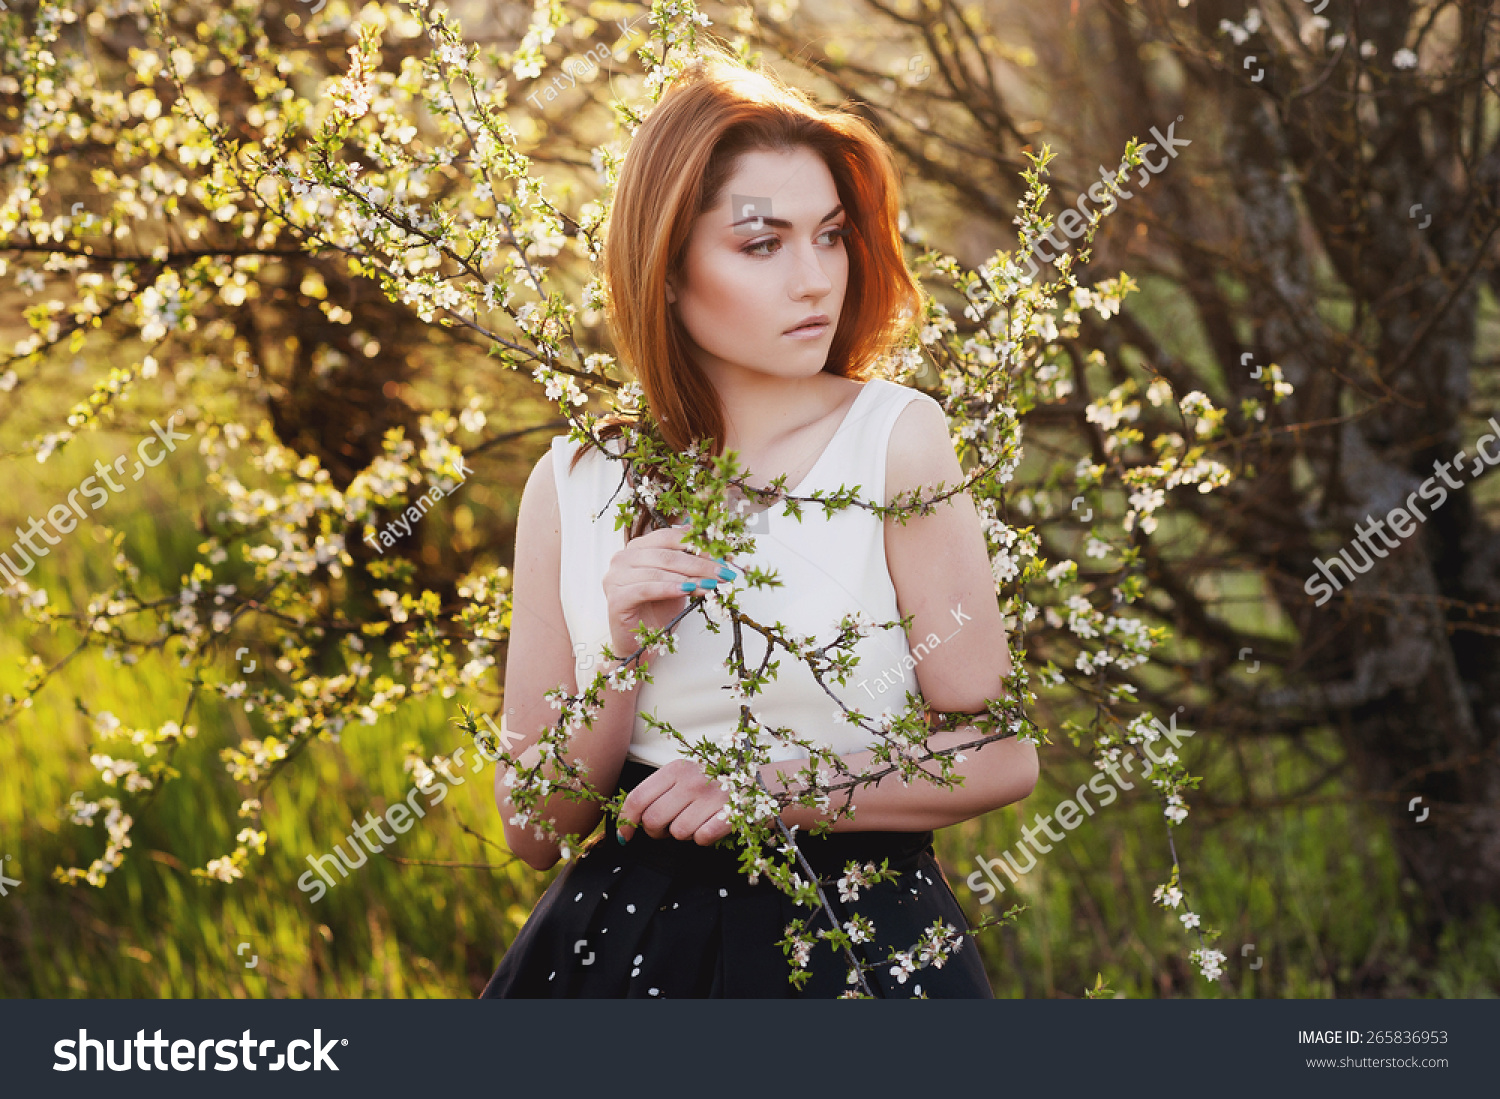 Beautiful Girl Sunset Lush Spring Garden Stock Photo (Royalty Free ...